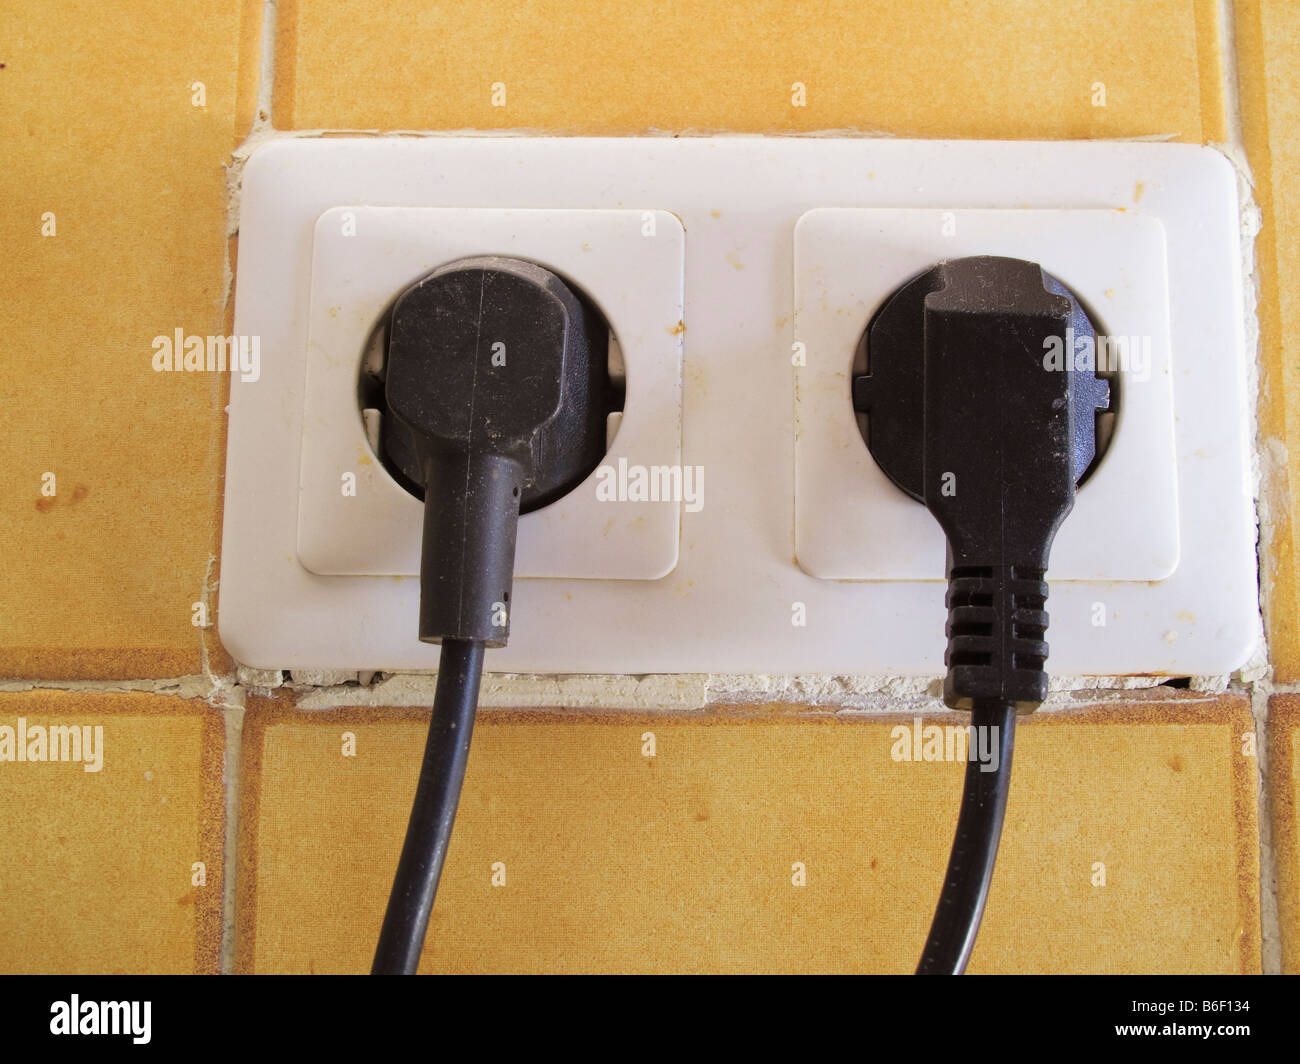 Two electrical plugs plugged into sockets in wall Stock Photo